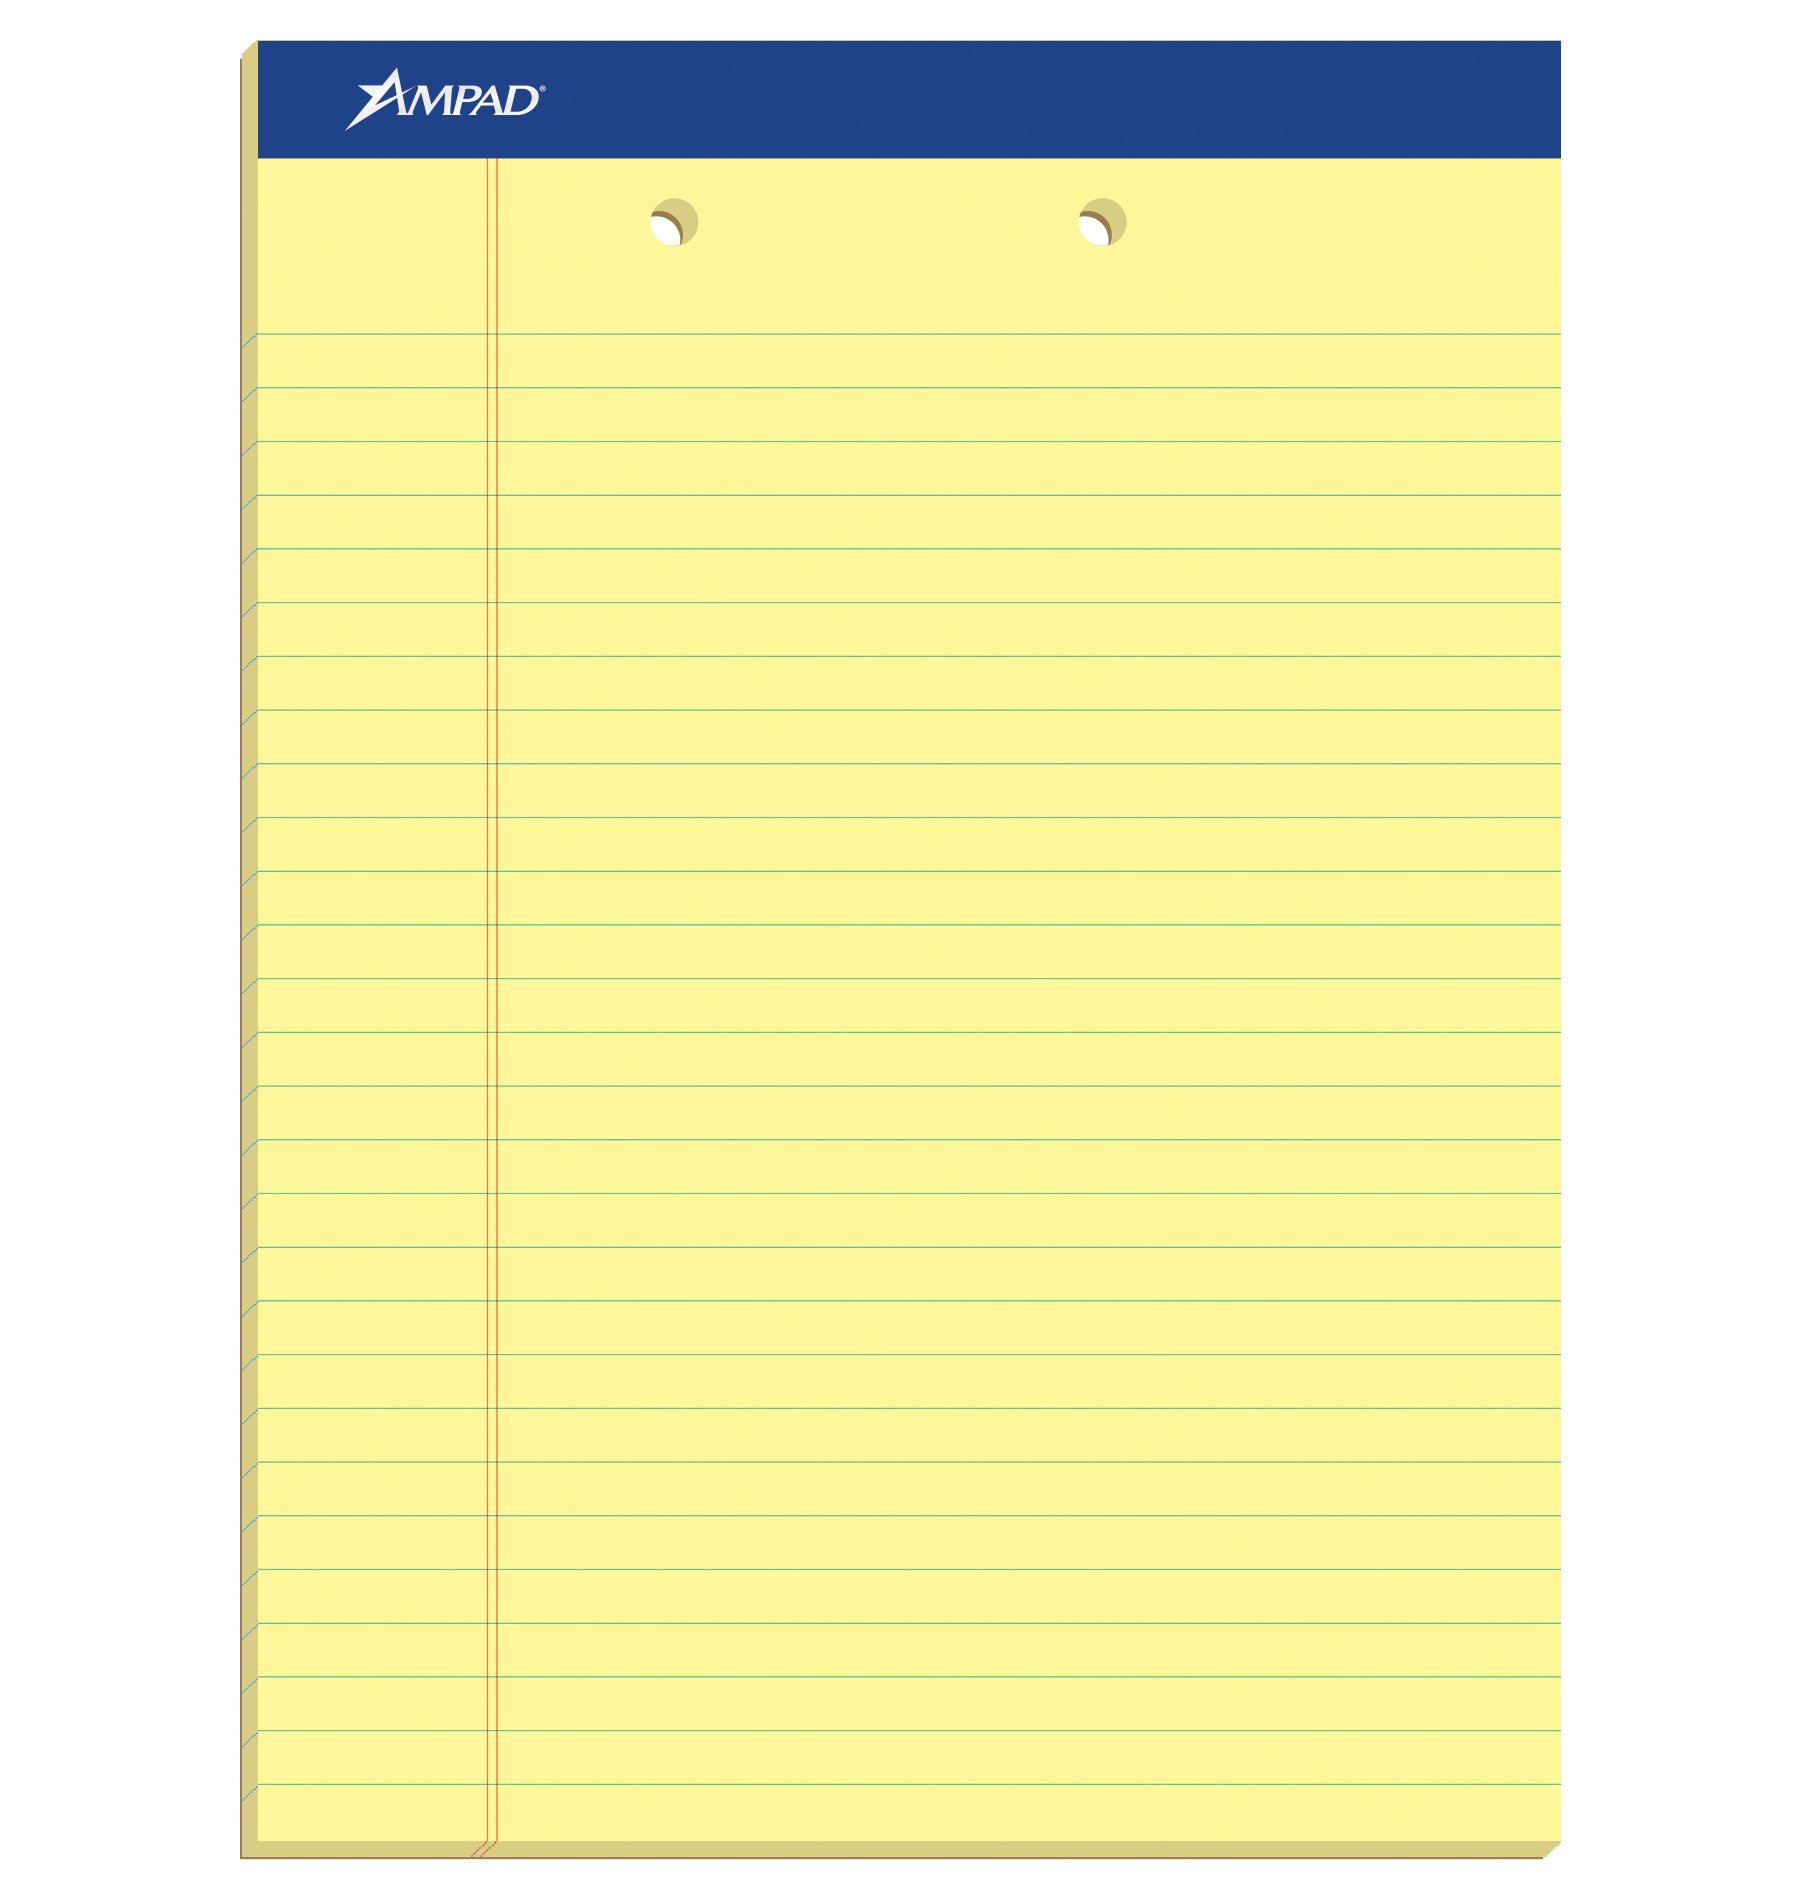 Ampad Evidence Perforated Pad,Size  8-1/2 x 11-3/4, Canary Yellow Paper , Legal Ruling , 50 Sheets per Pad, 2 Hole Punched, Pack of 12 (20-224) by Ampad